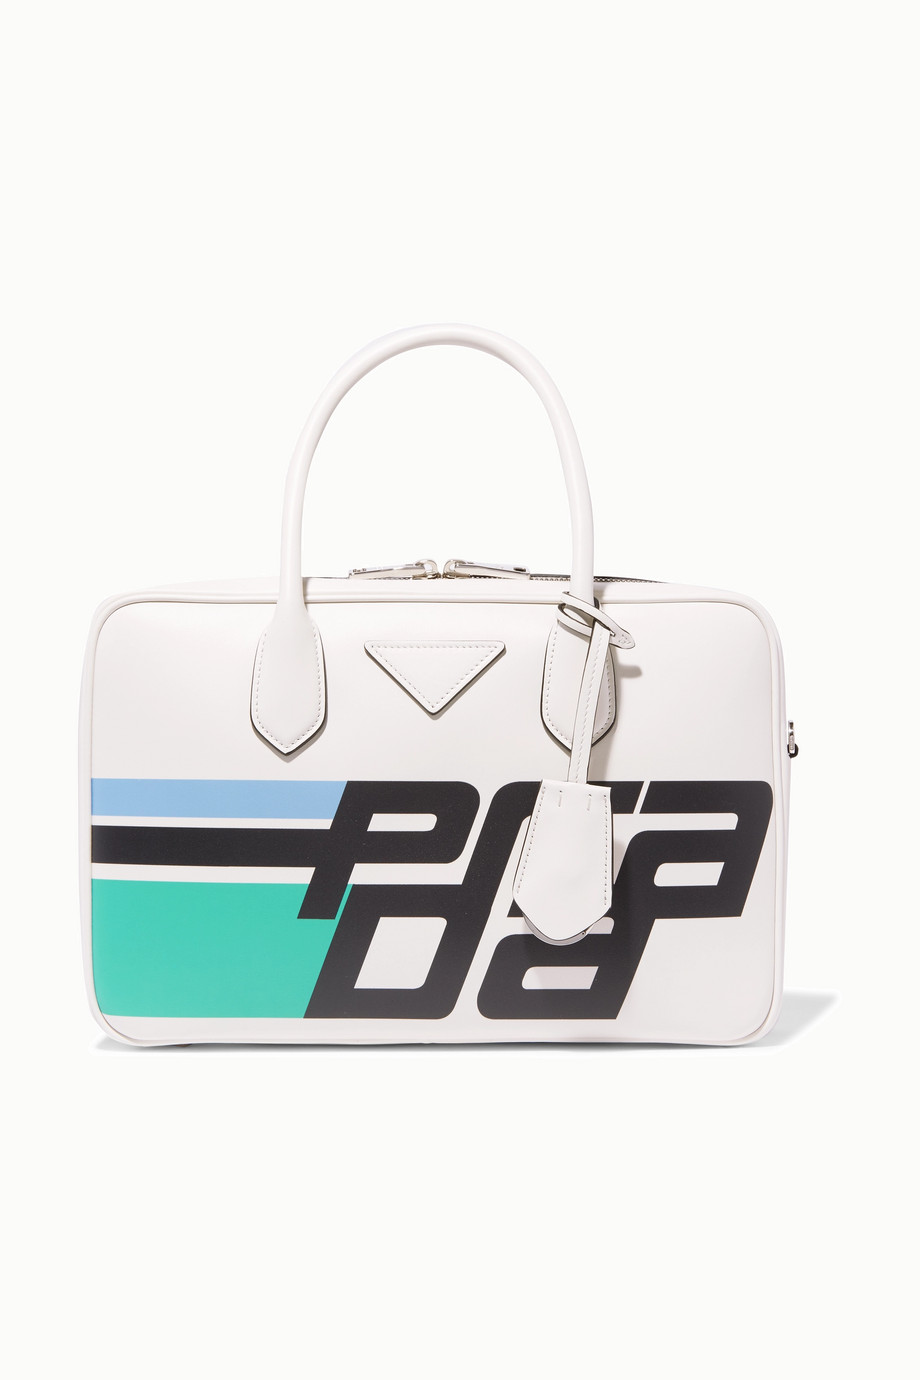 Prada Bauletto printed leather tote